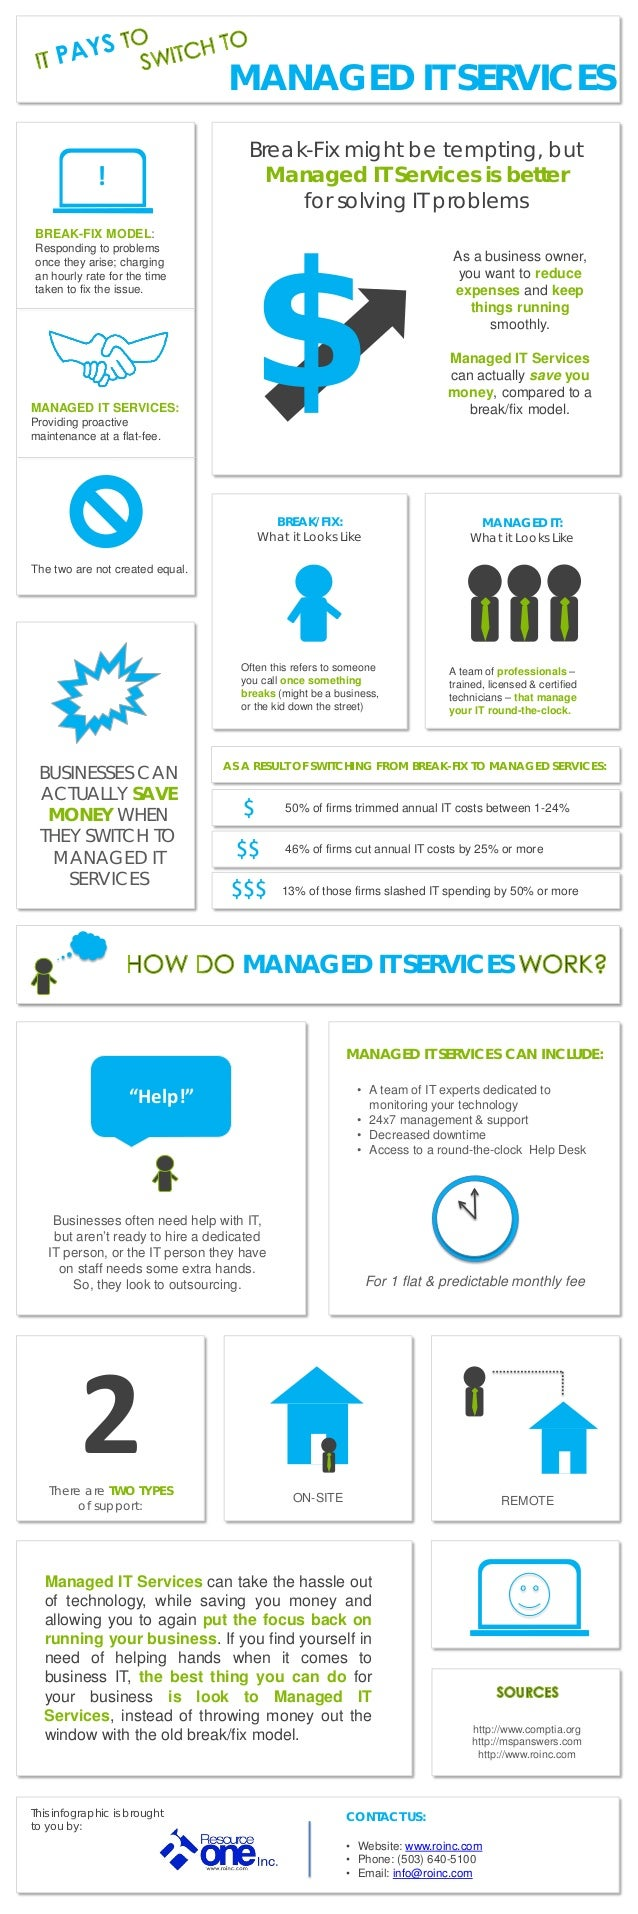 MANAGED IT SERVICES BREAK-FIX MODEL: Responding to problems once they arise; charging an hourly rate for the time taken to...